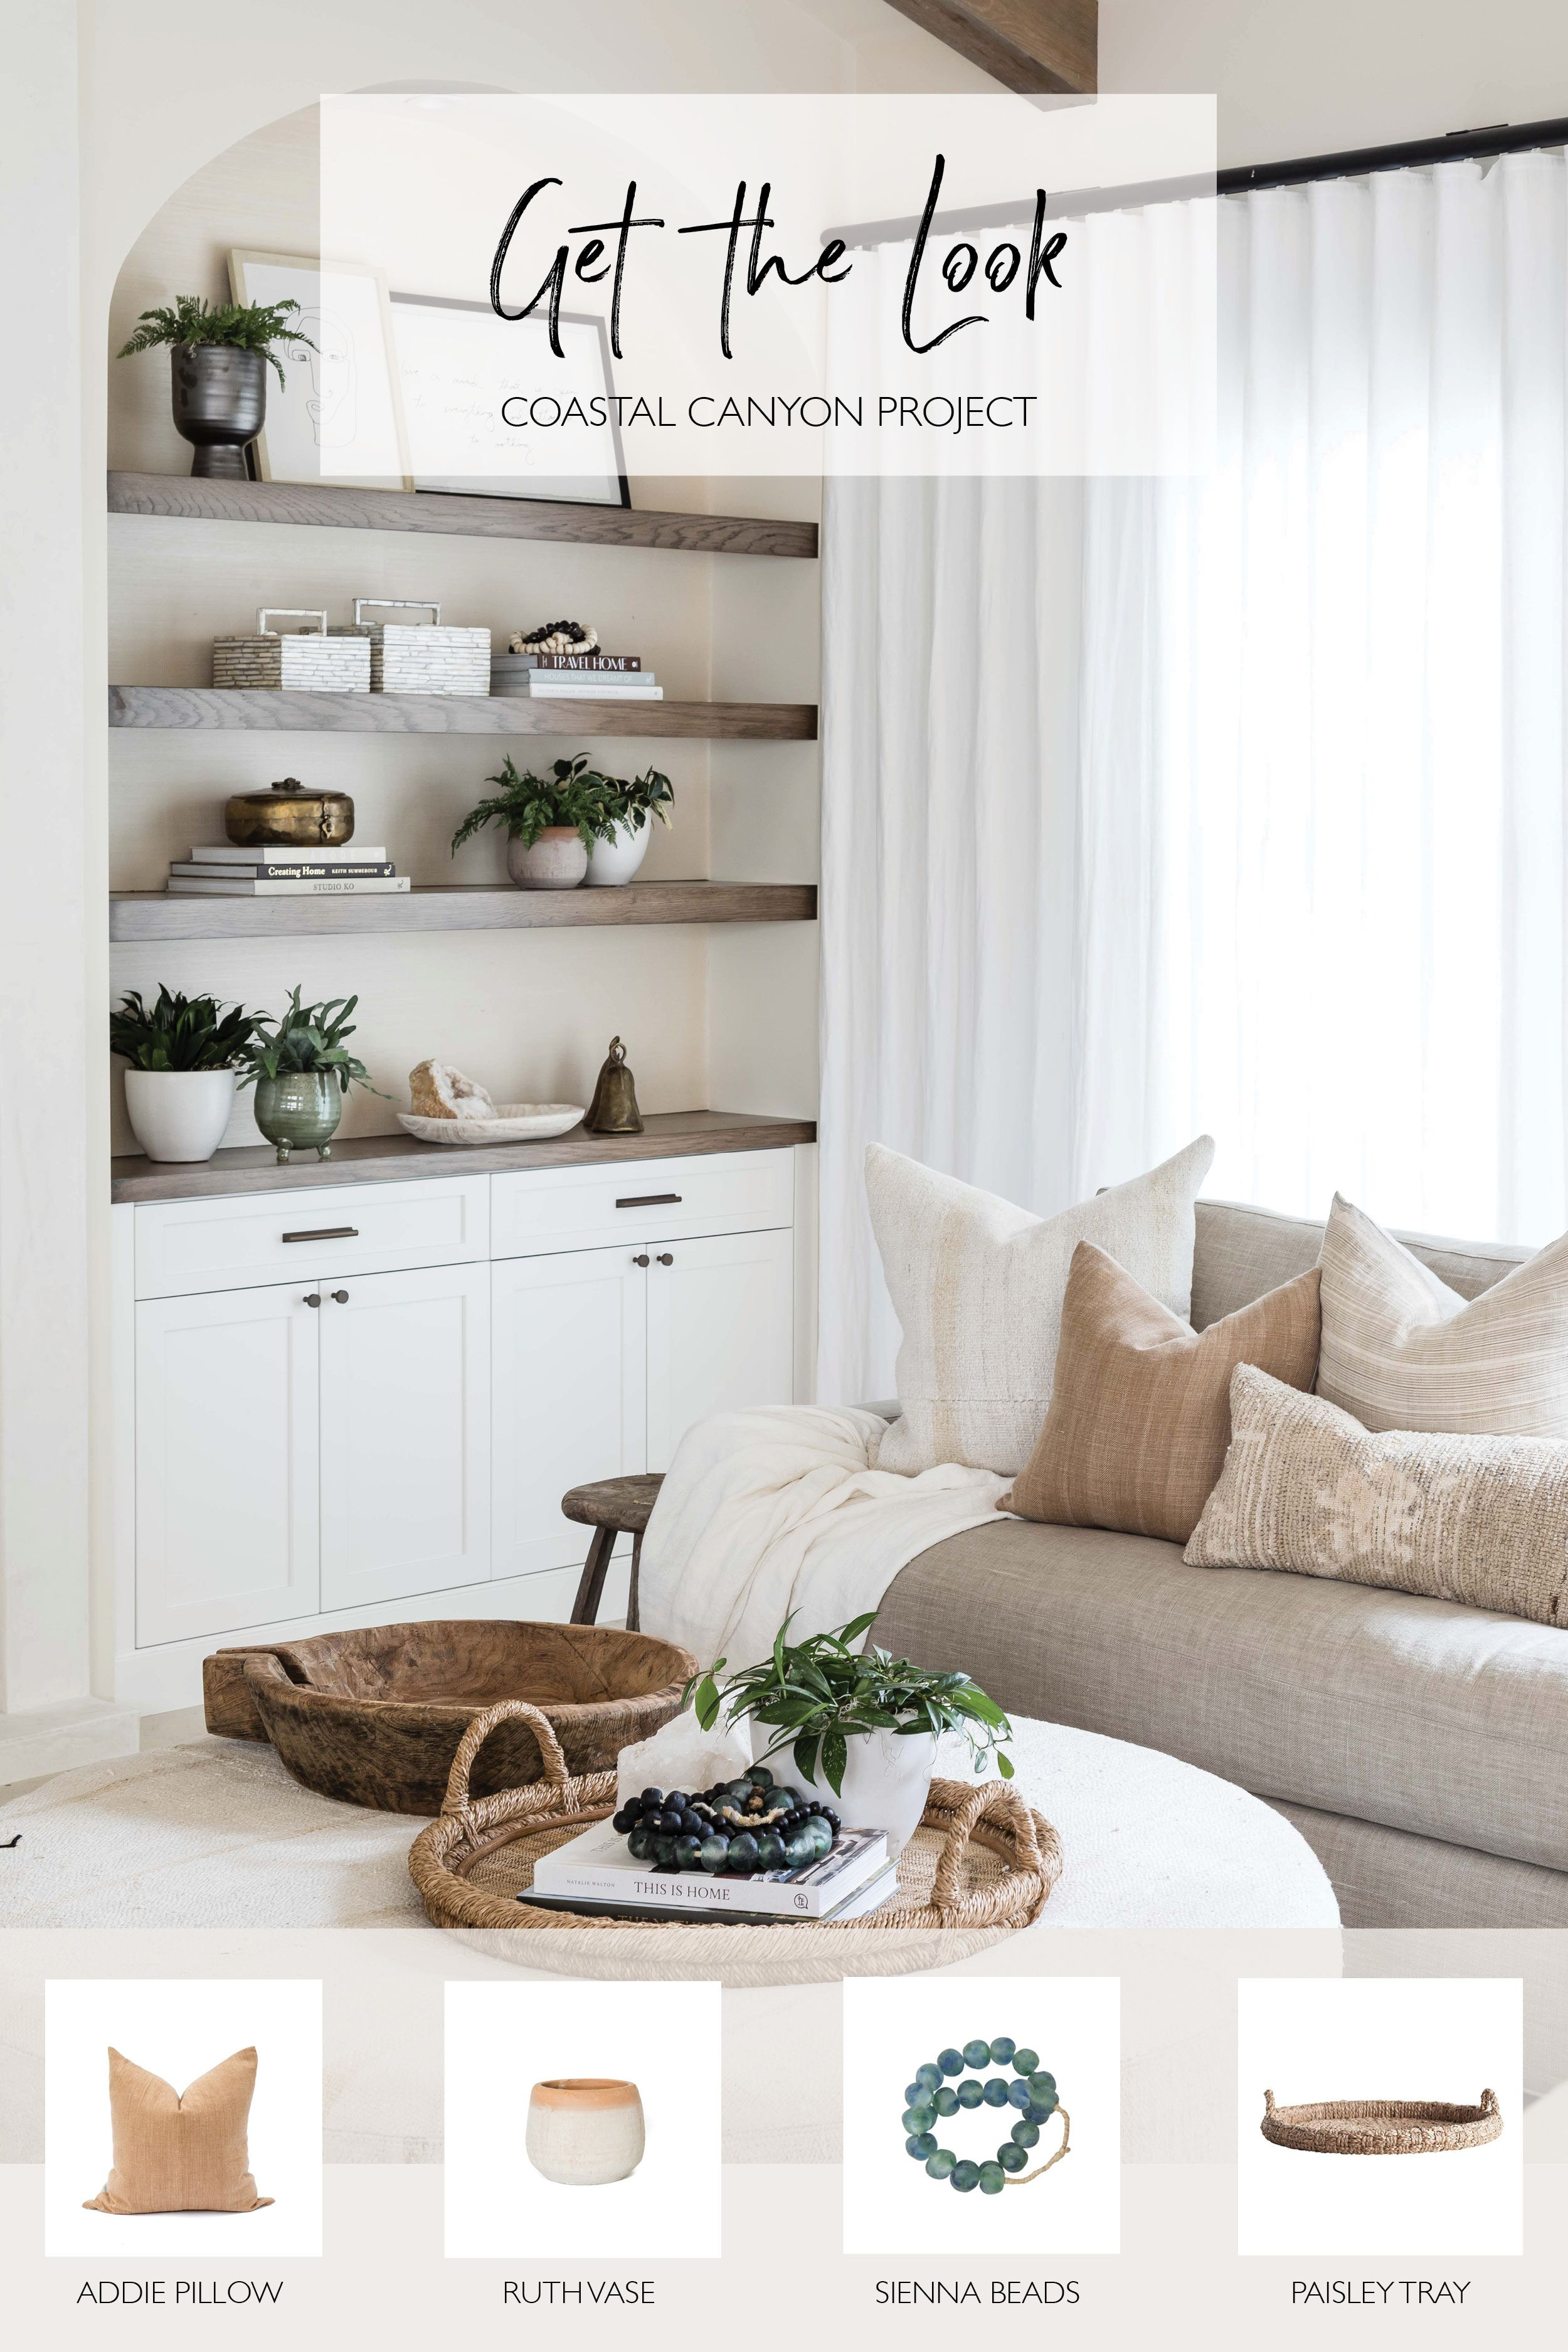 Get the look from our #coastalcanyonproject #LivingRoom #LivingRoomDesign #LivingRoomDecor #LivingRoomLayout #FamilyRoom #FamilyRoomDesign #FamilyRoomDecor #FamilyRoomLayout #Couch #LargeCouch #FamilyRoomCouch #LivingRoomCouch #OpenConcept